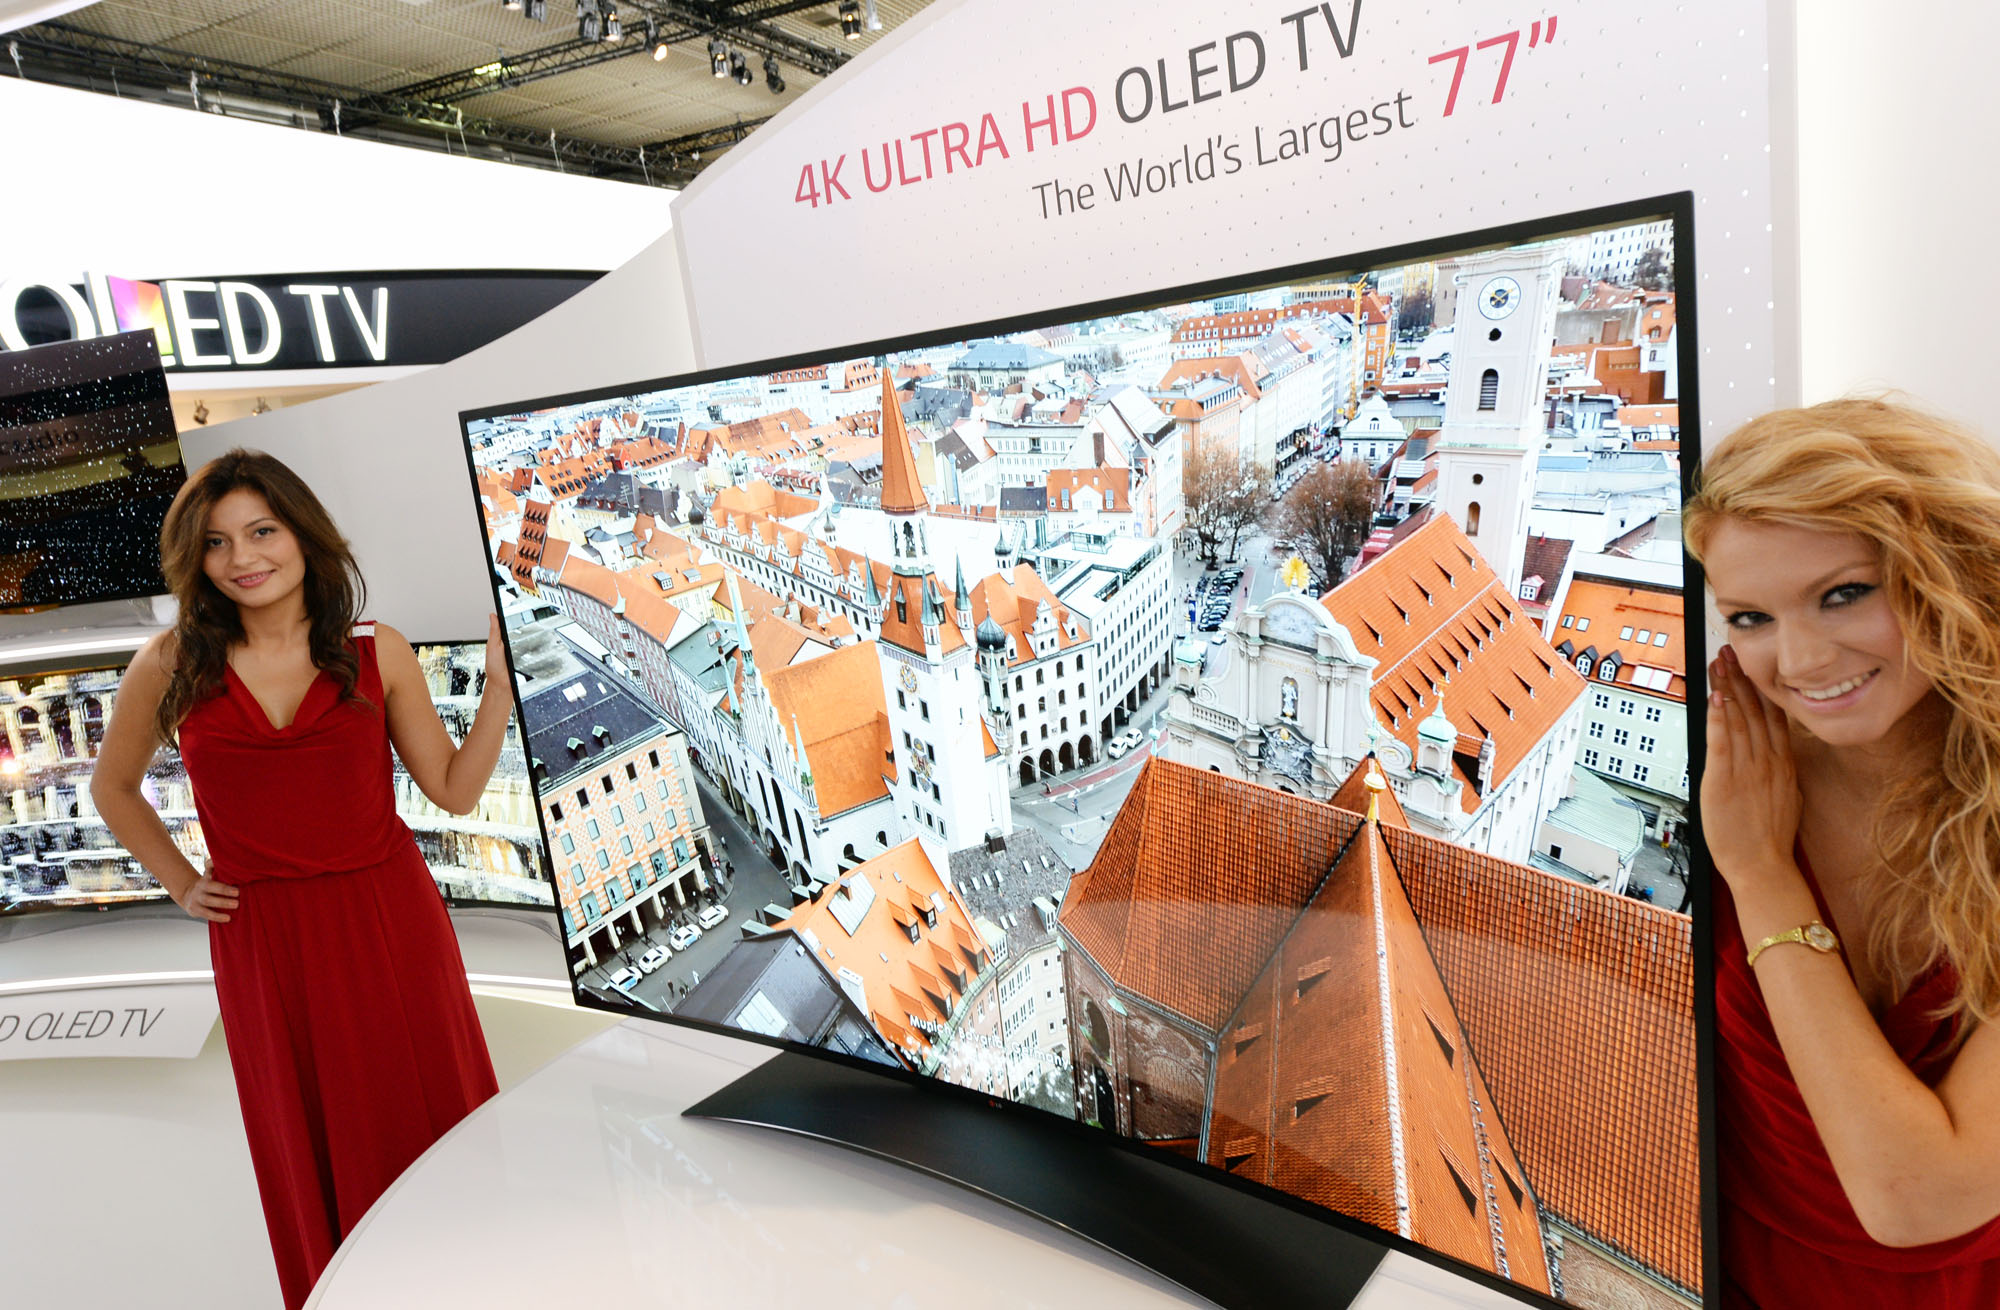 Two models presenting the 77-inch ULTRA HD OLED TV at IFA 2013